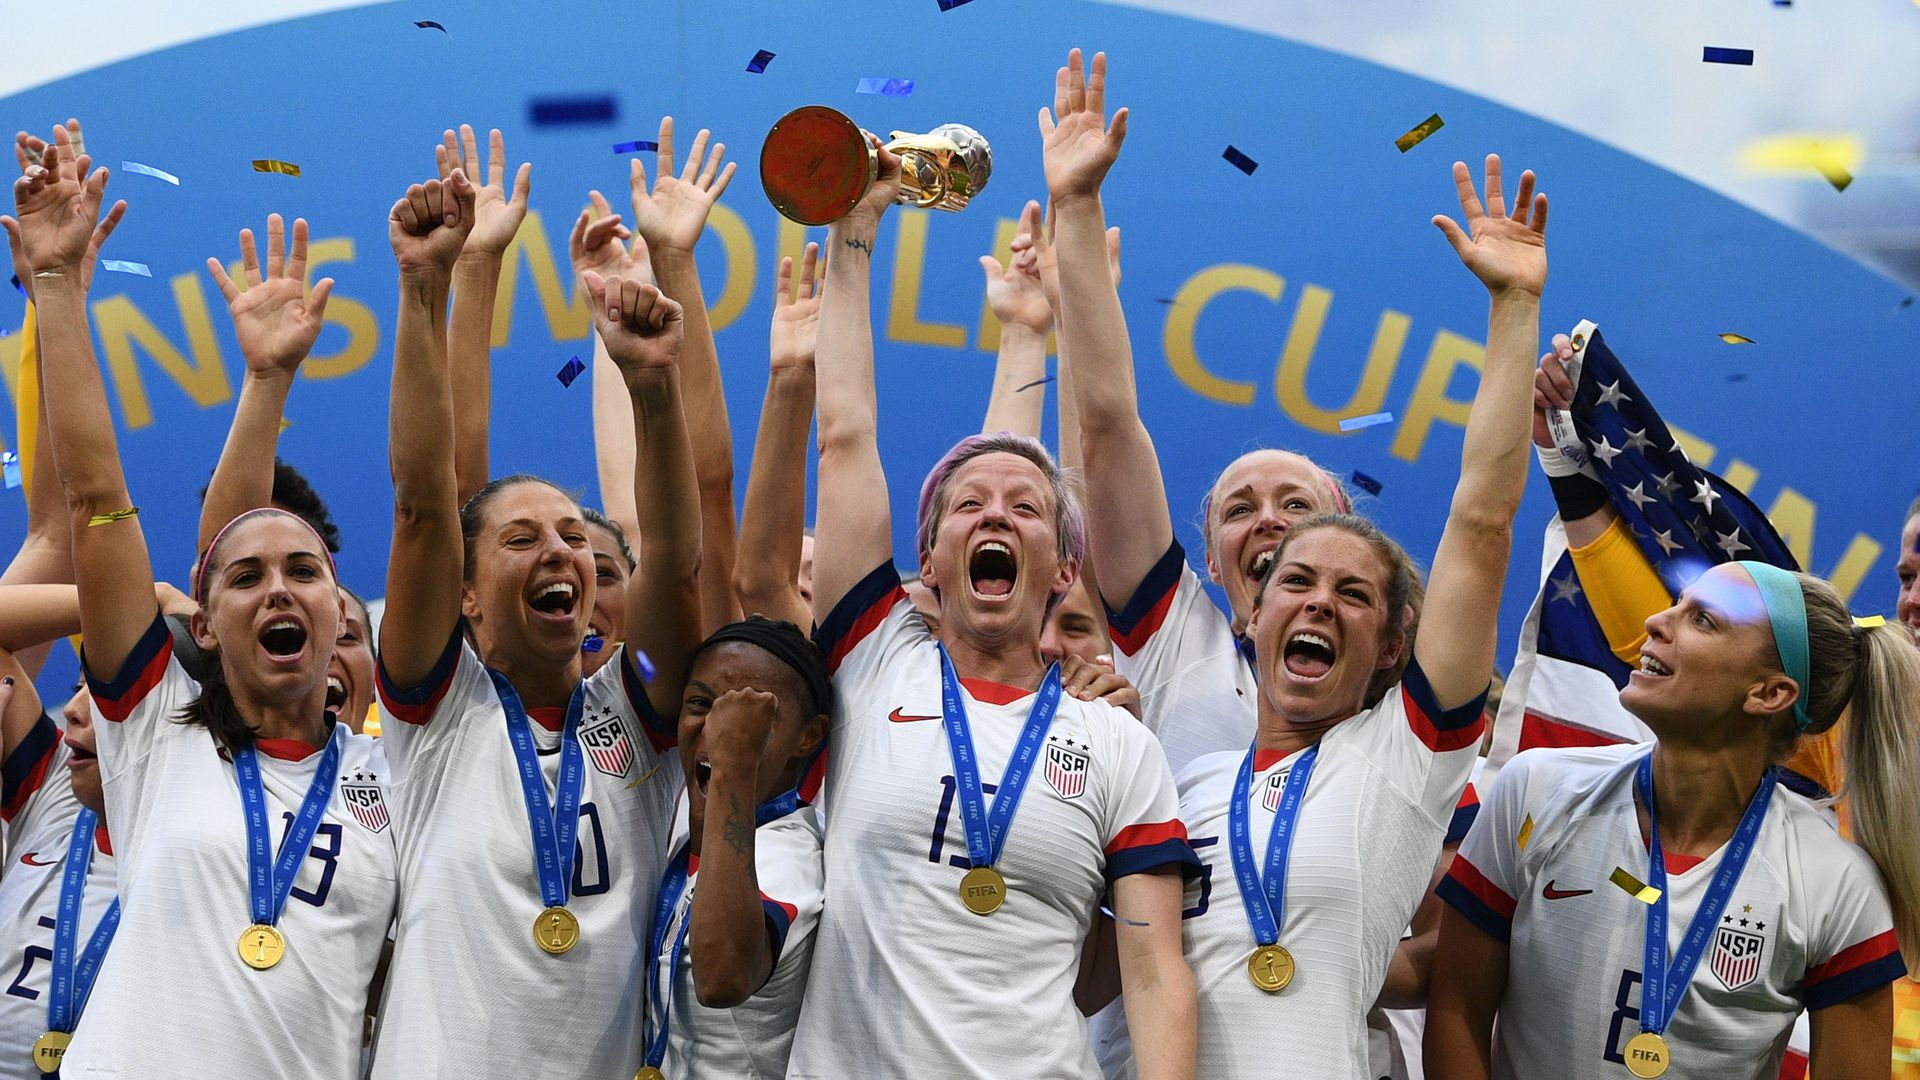 The U.S. players with their 4th World Cup in Lyon, central-eastern France.